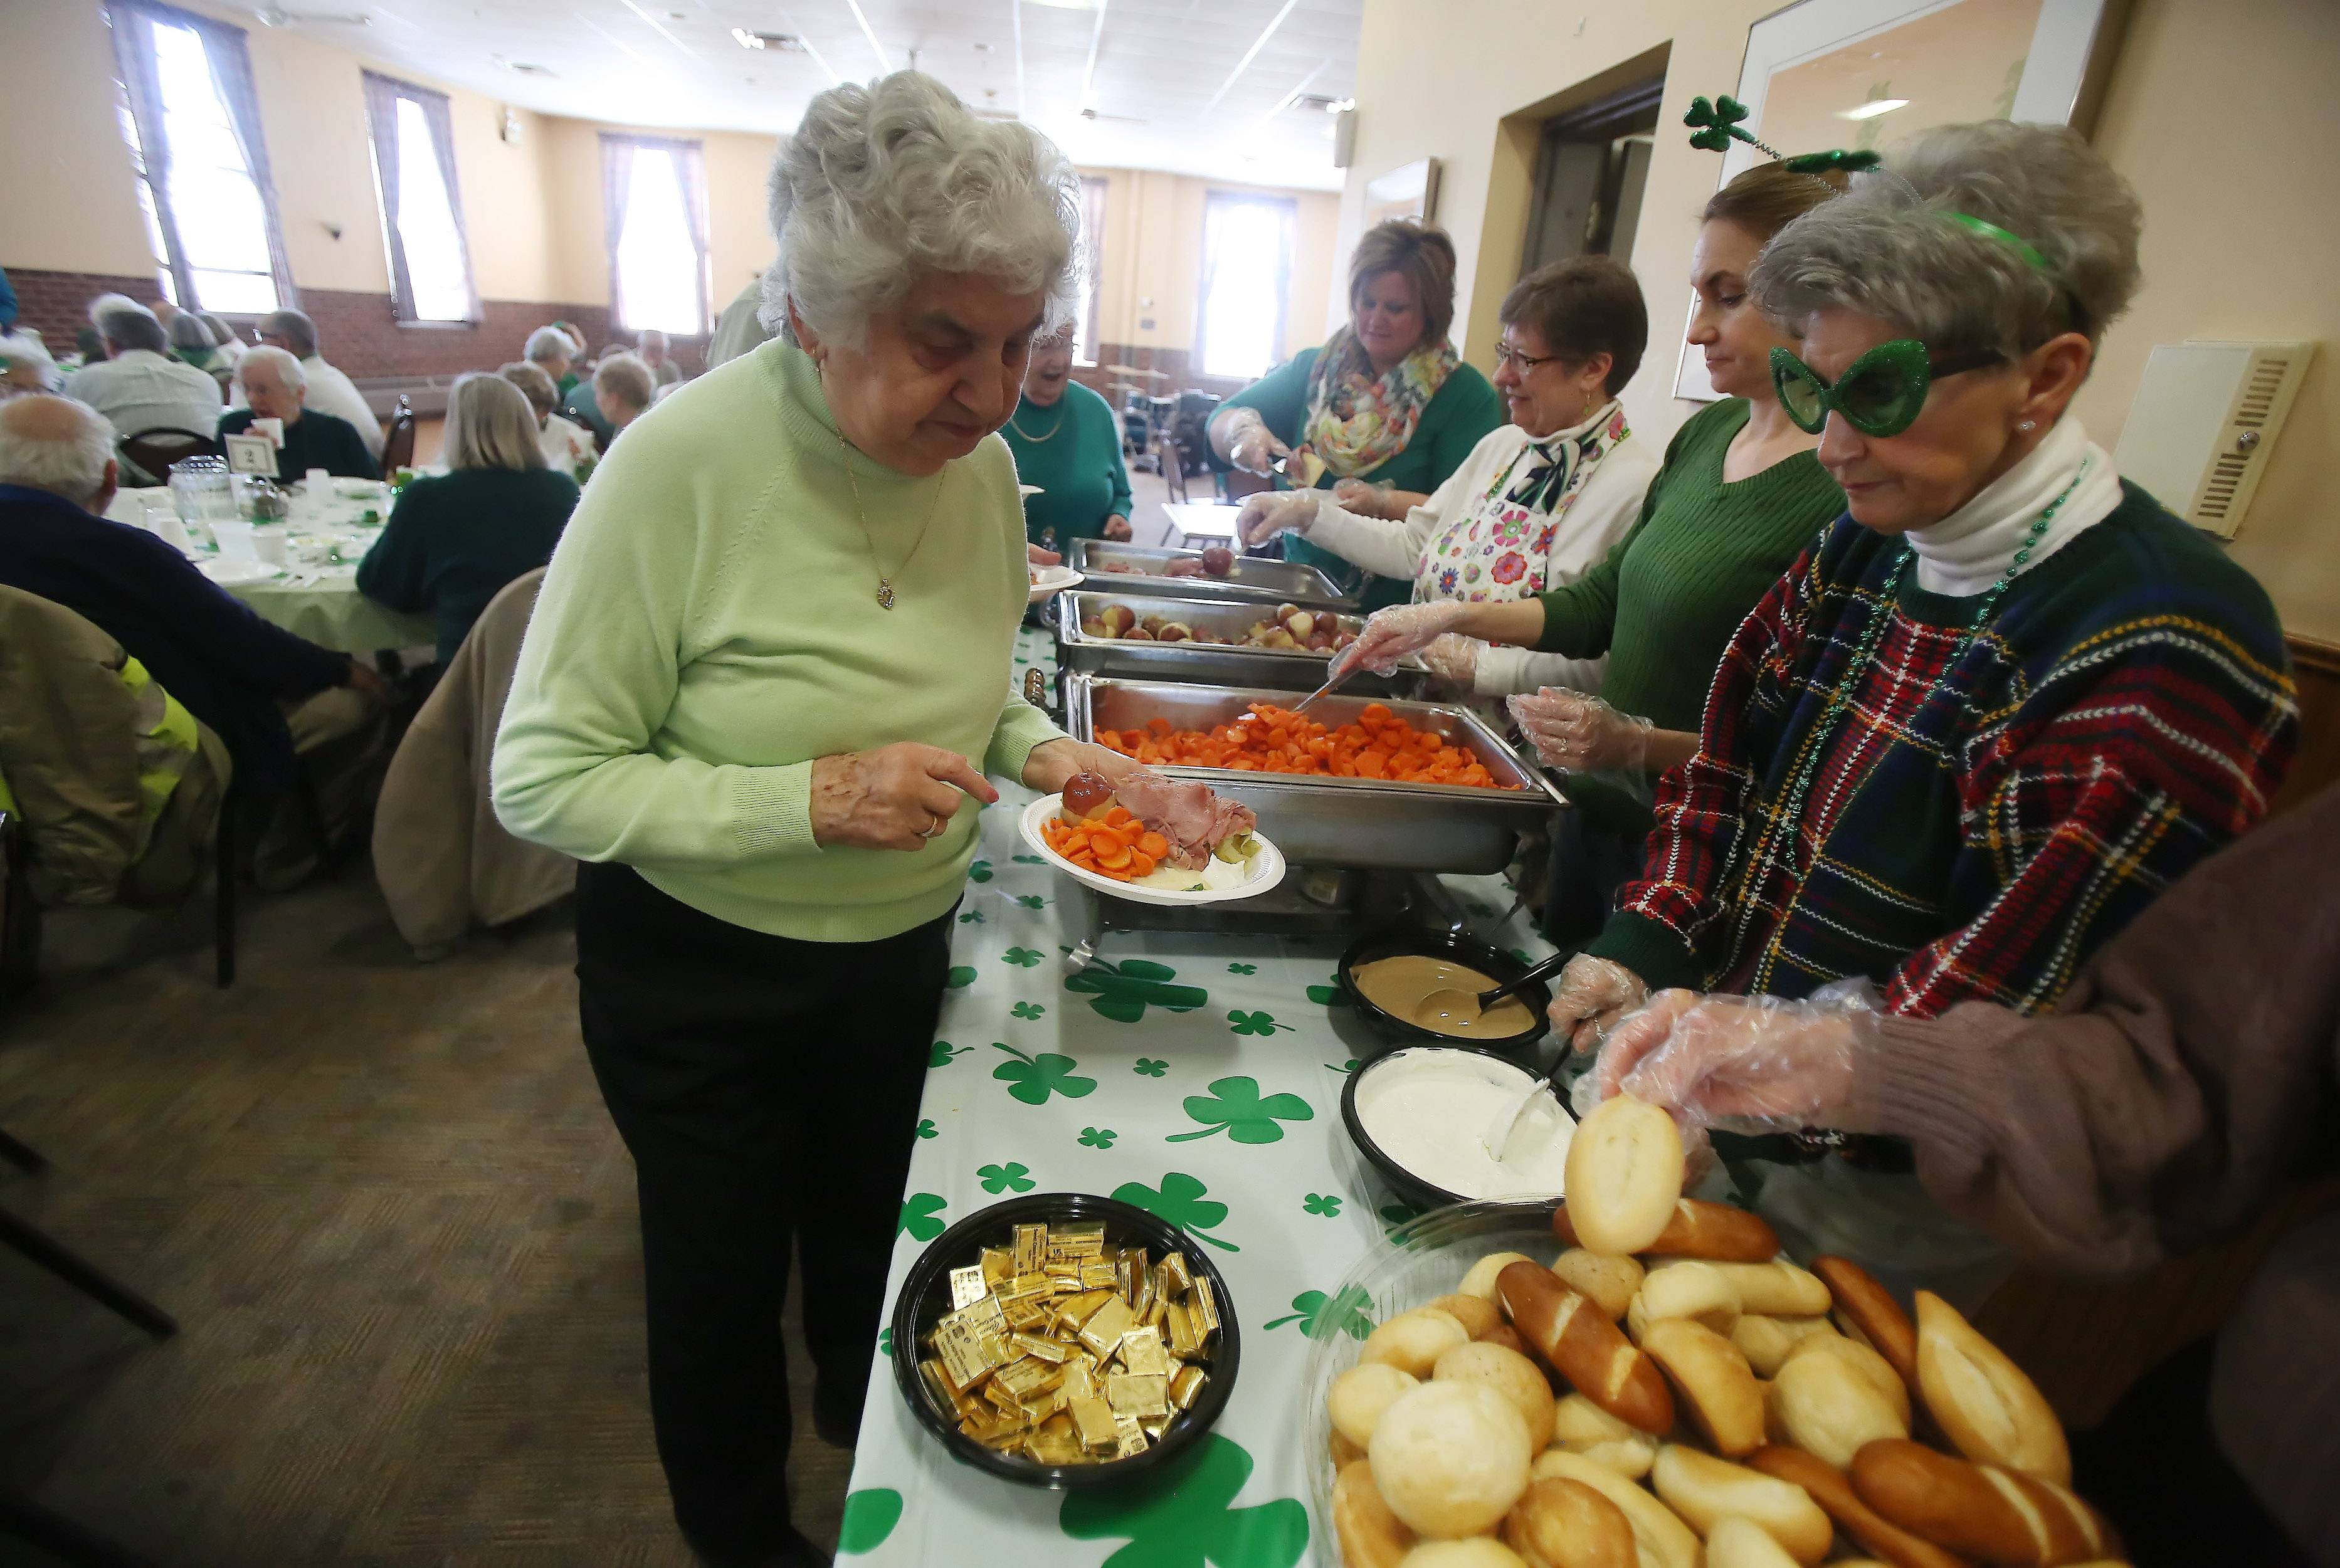 A St. Patrick's Day Party at the Libertyville Senior Center on March 17 in the Libertyville Civic Center.